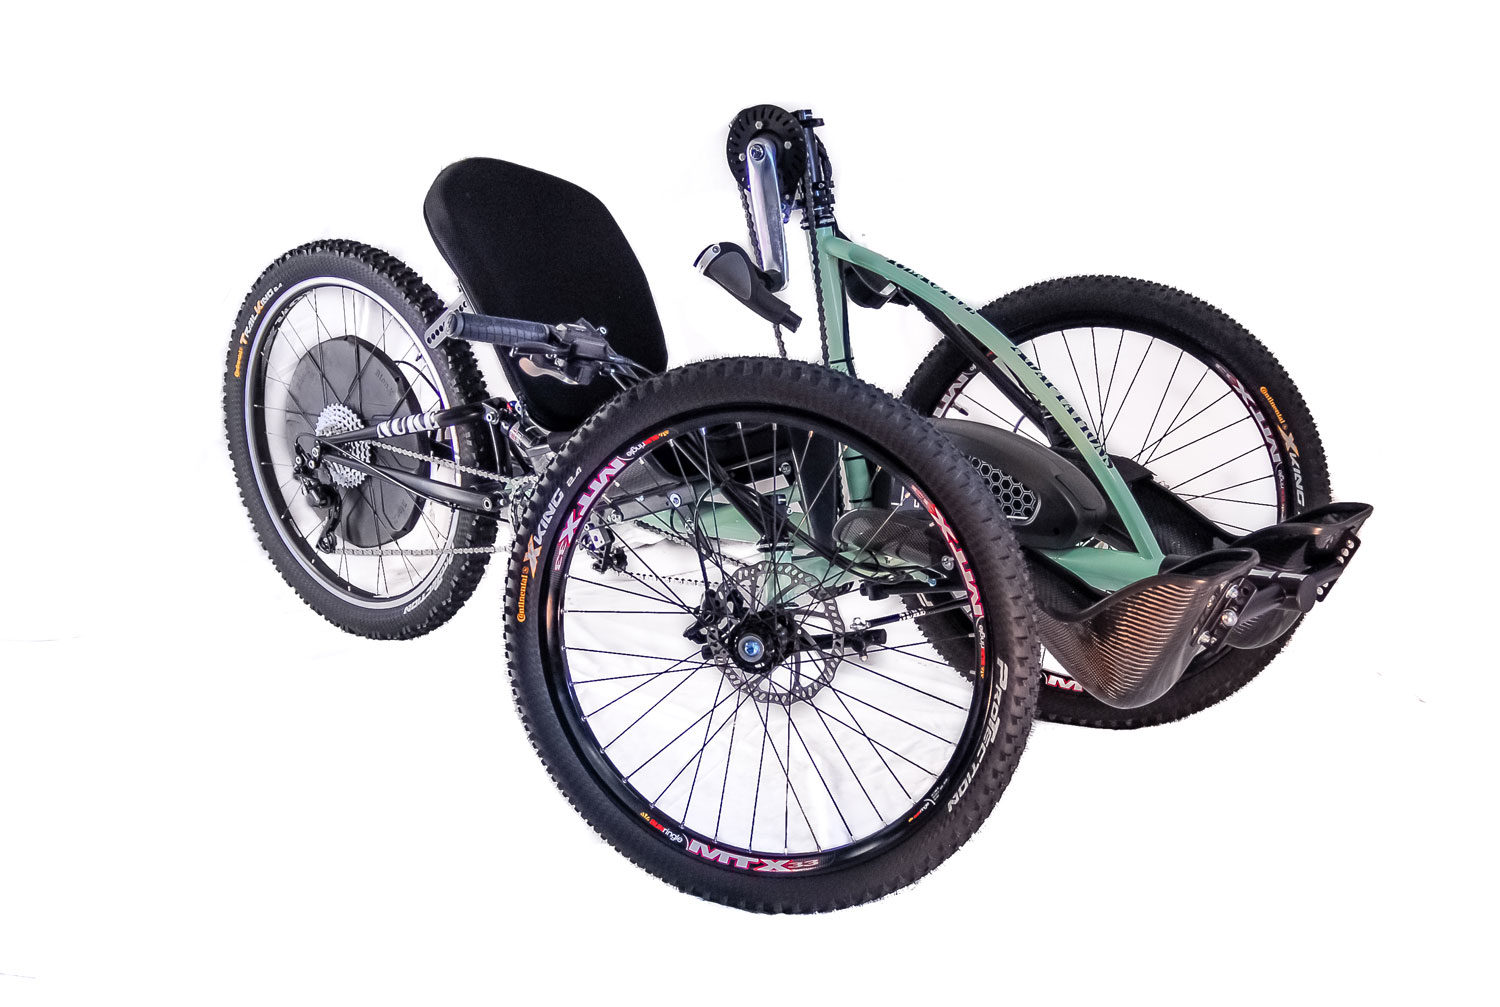 Reactive Adaptations Nuke Offroad Handcycle  sm